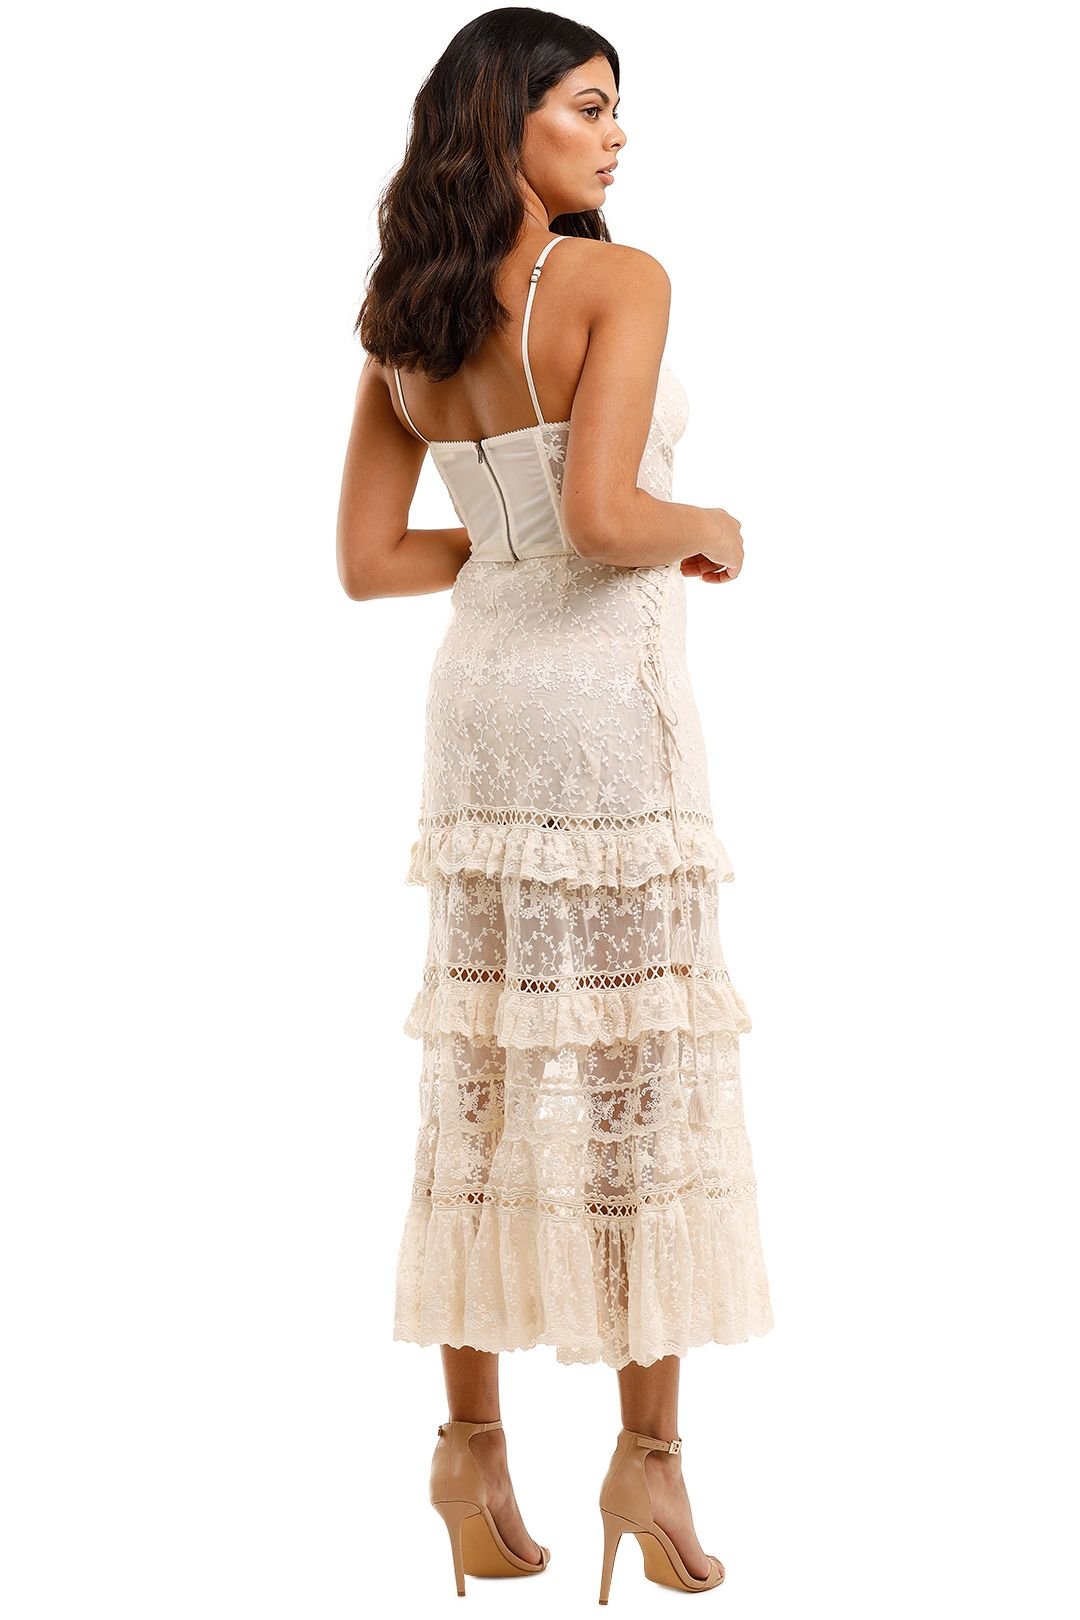 Spell Le Gauze Lace Tiered Skirt and Bustier Set Lace